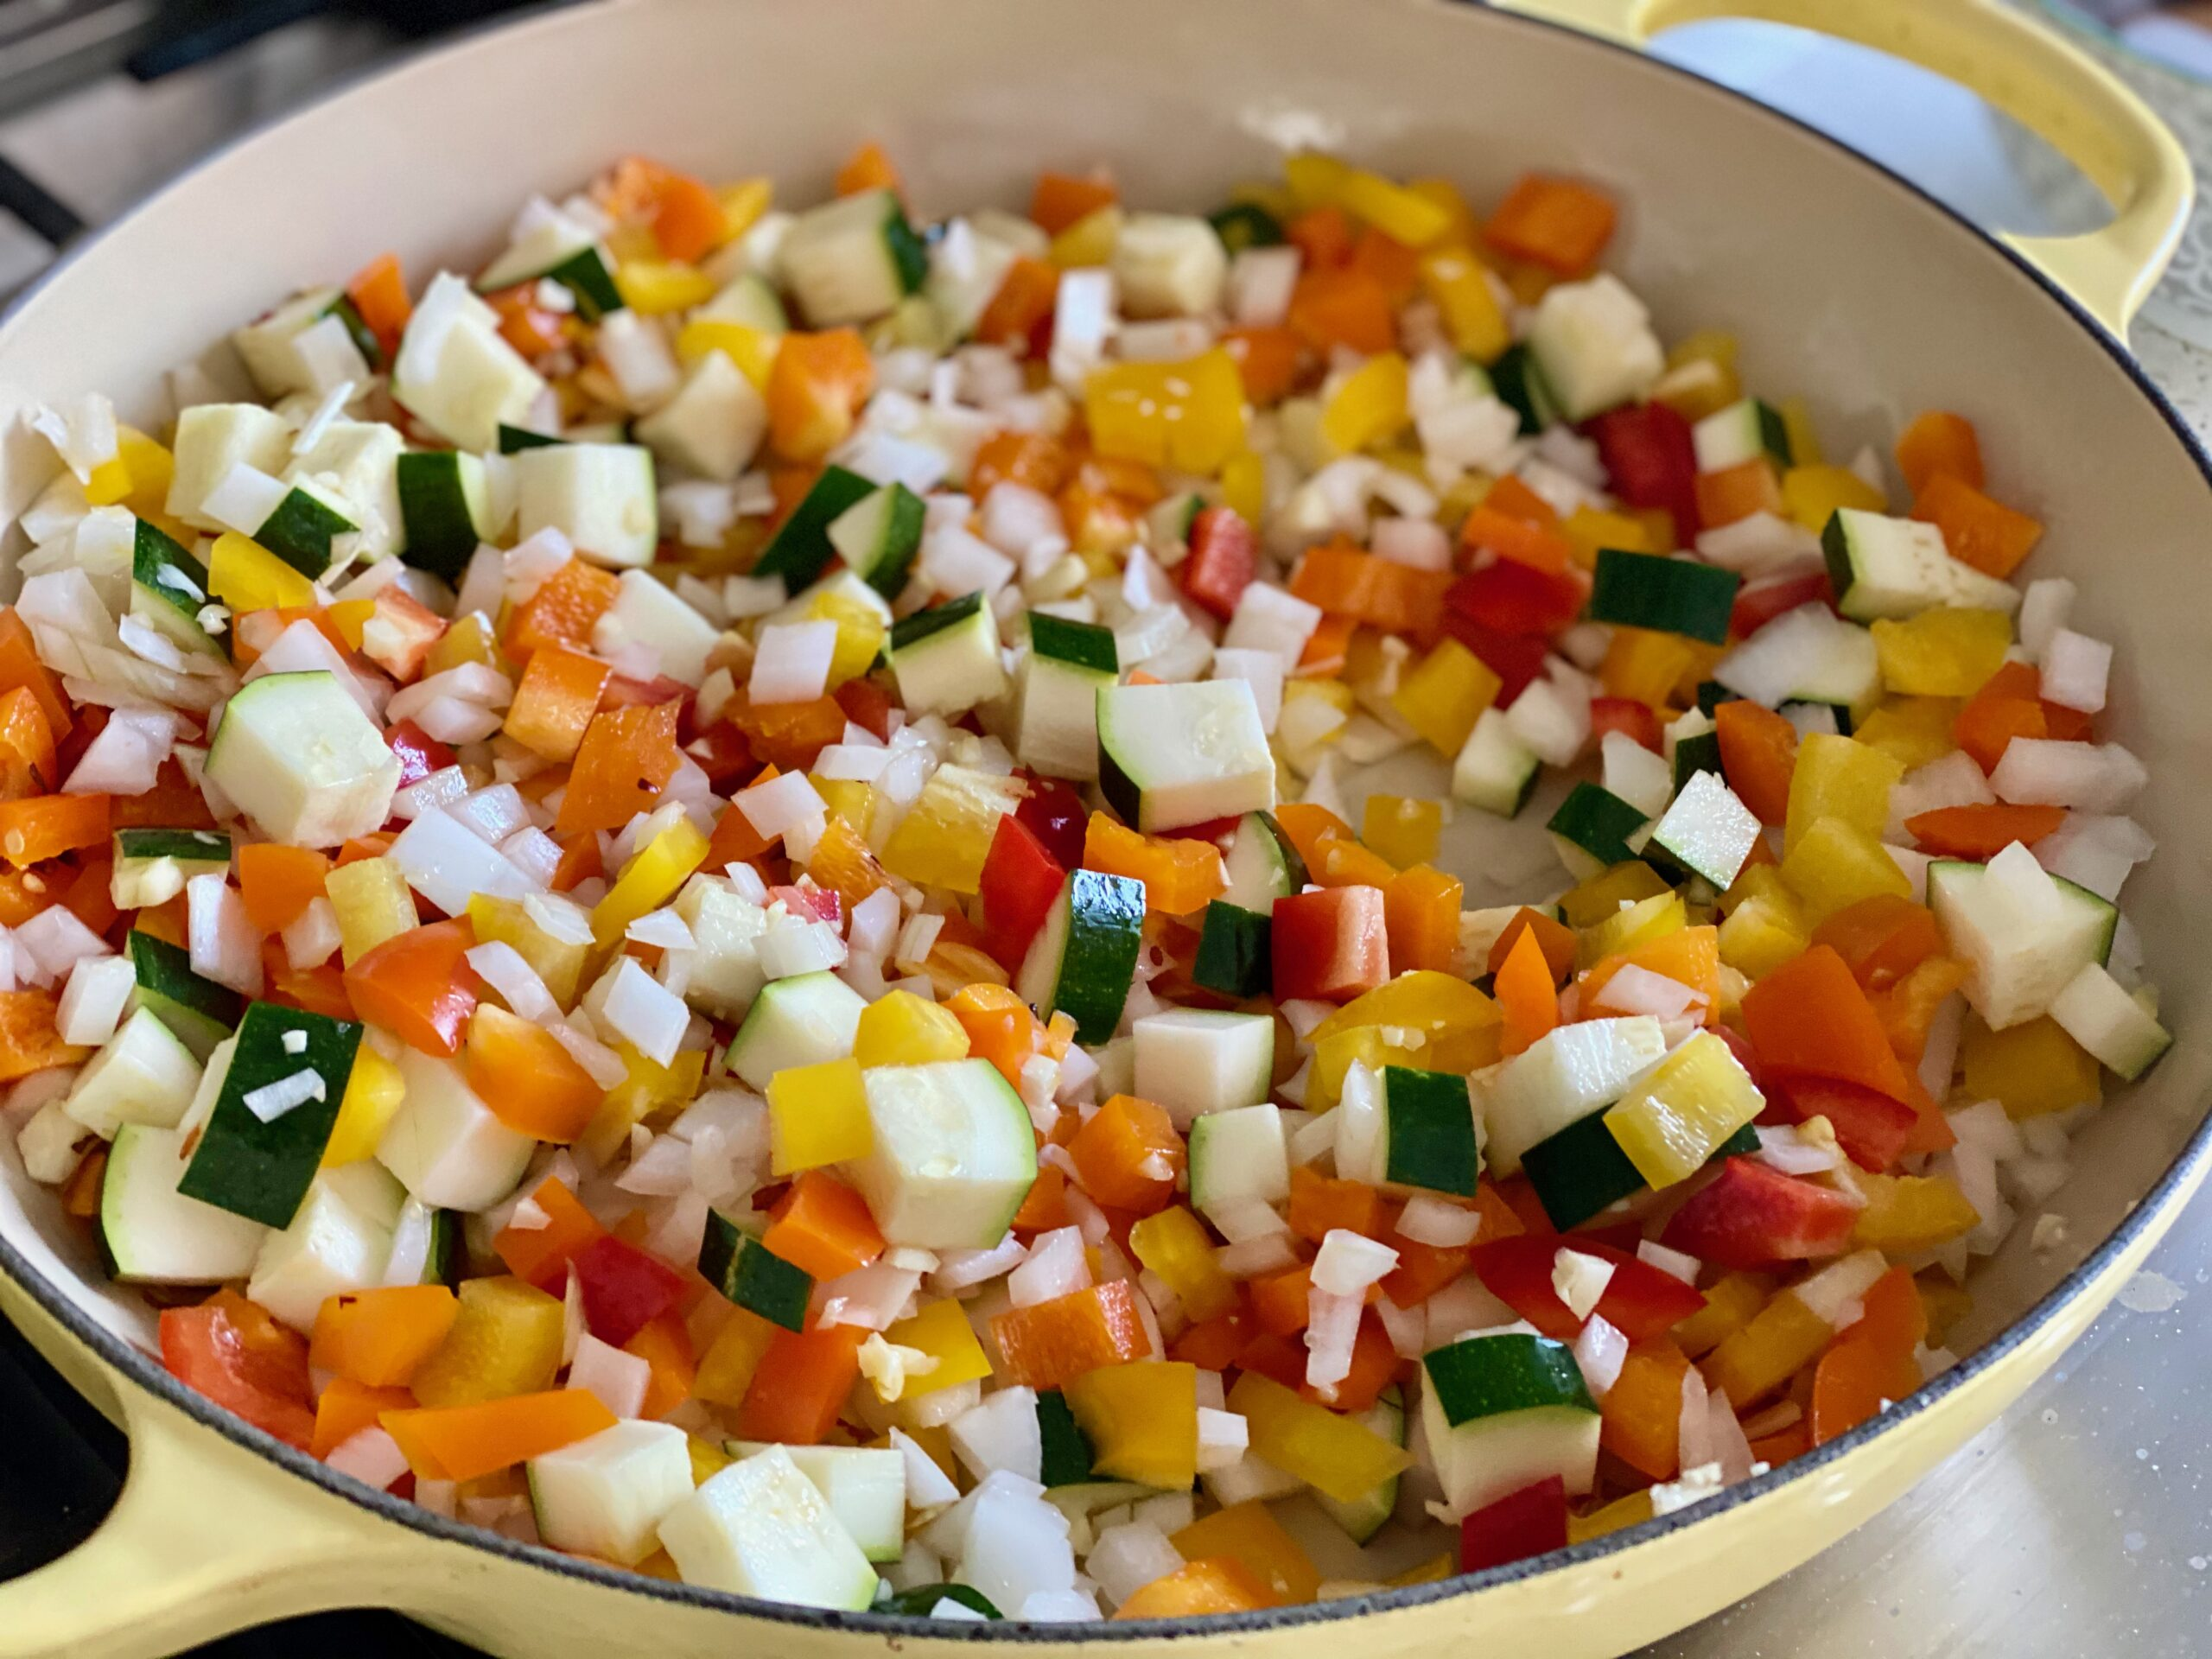 A pan of pepper, onions and zucchini cooking